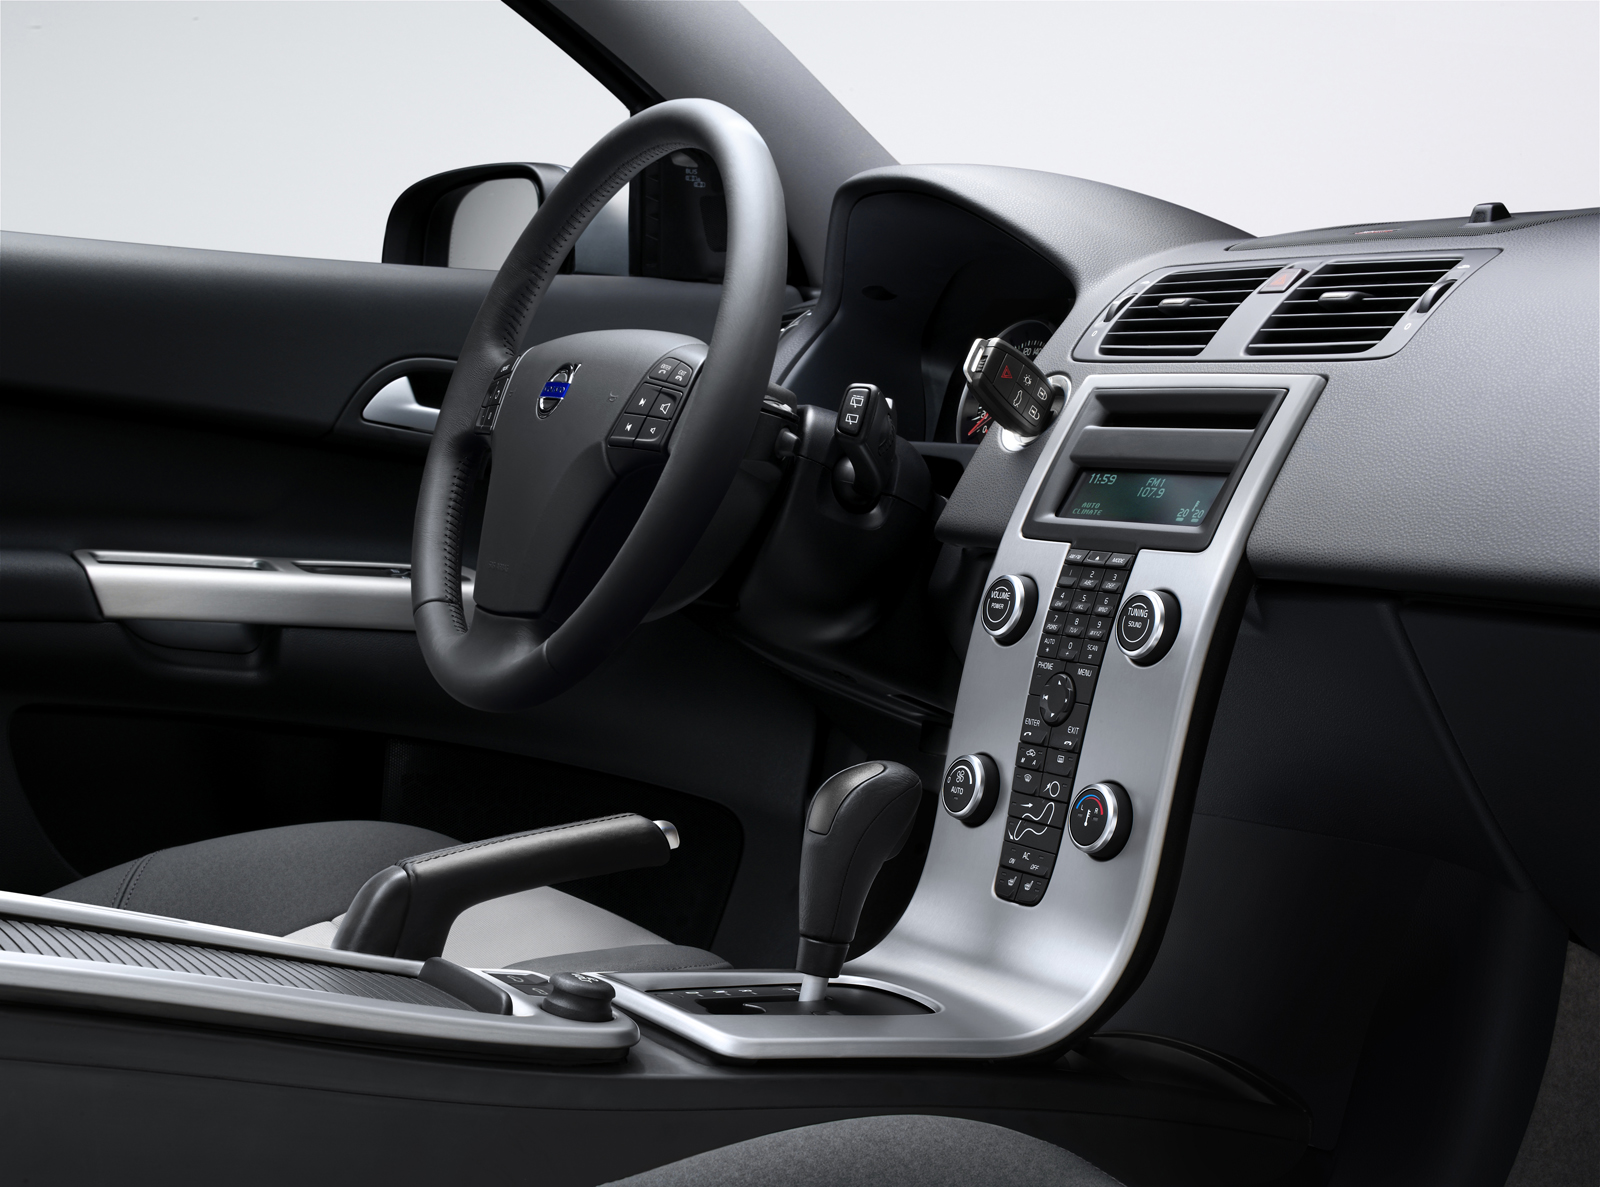 Volvo c30 interior design award picture 34452 for Interieur de voiture